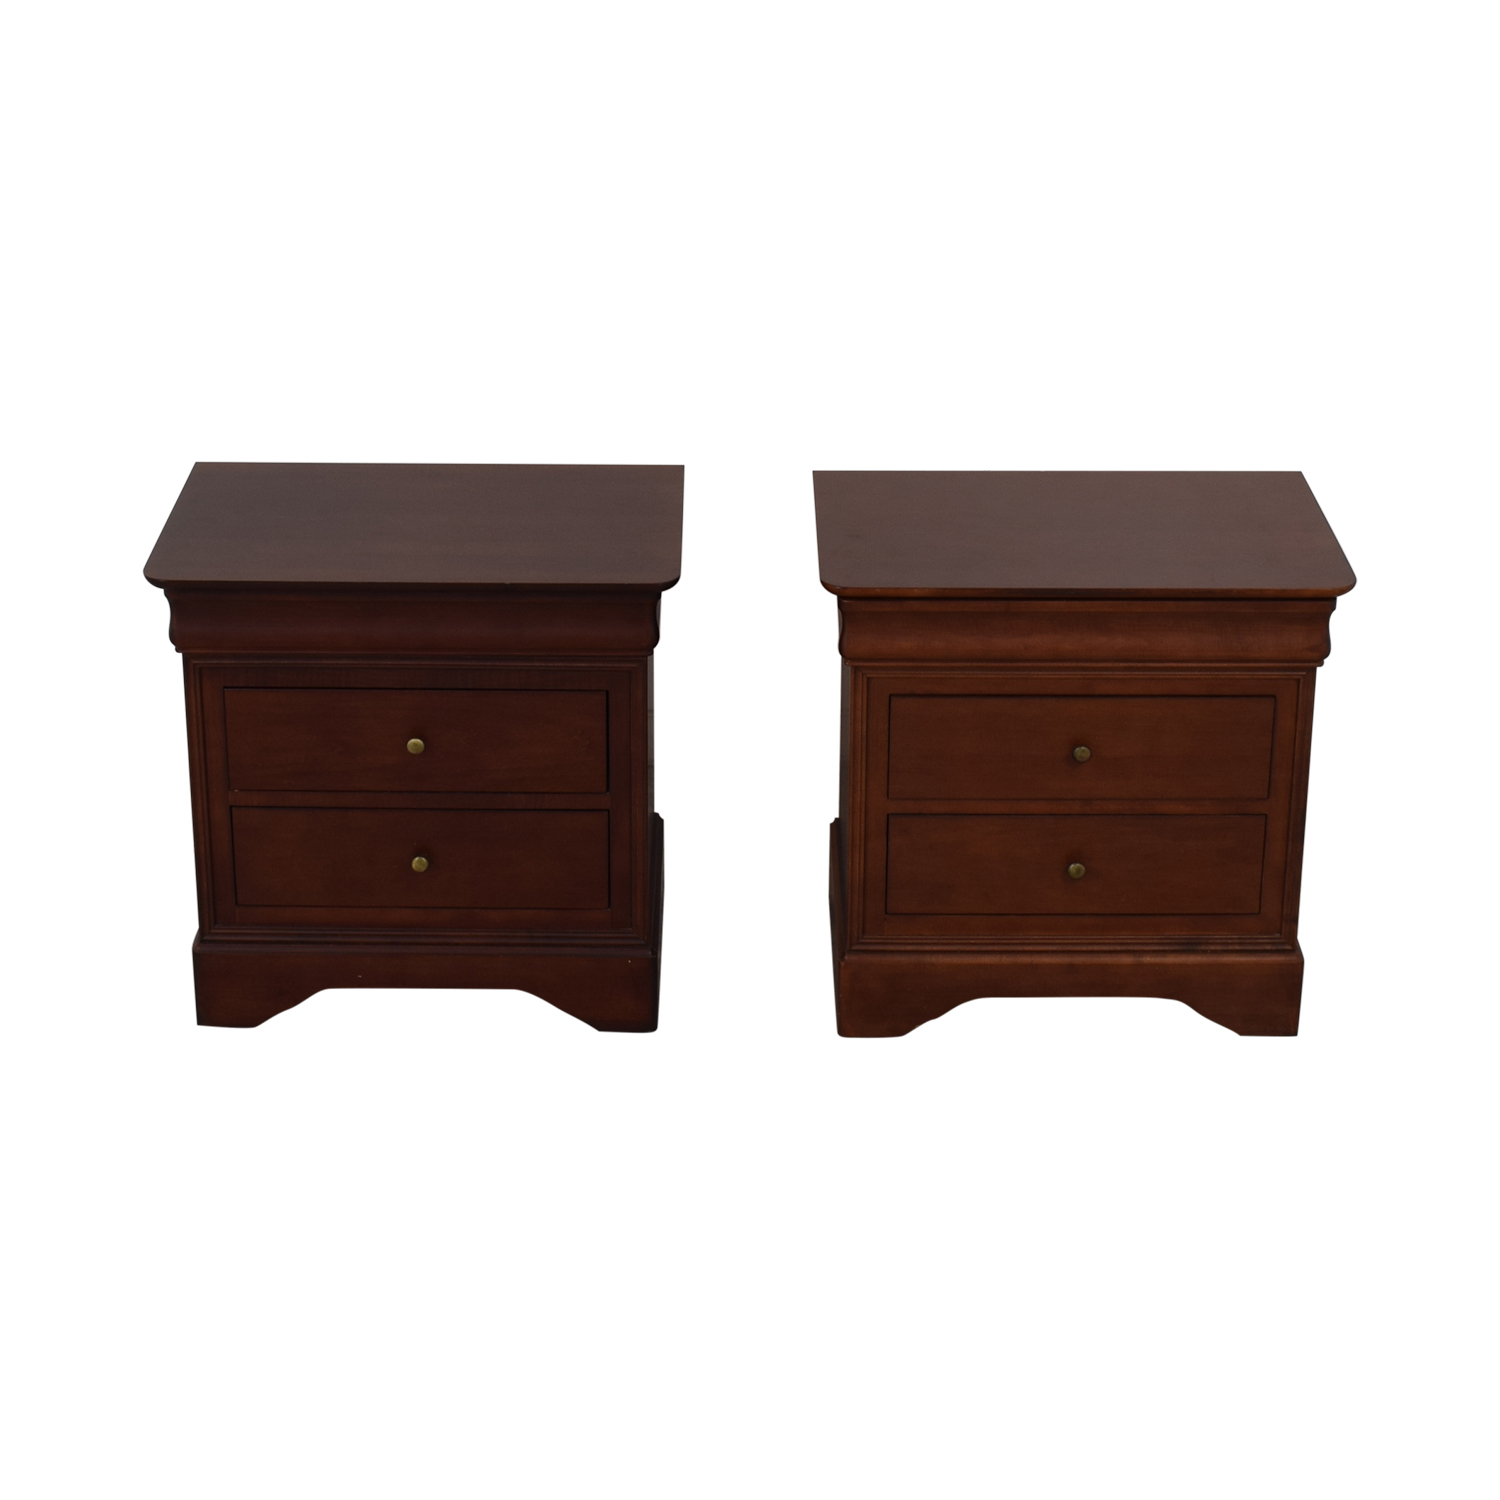 Wooden Two Drawer Night Stands or End Tables second hand